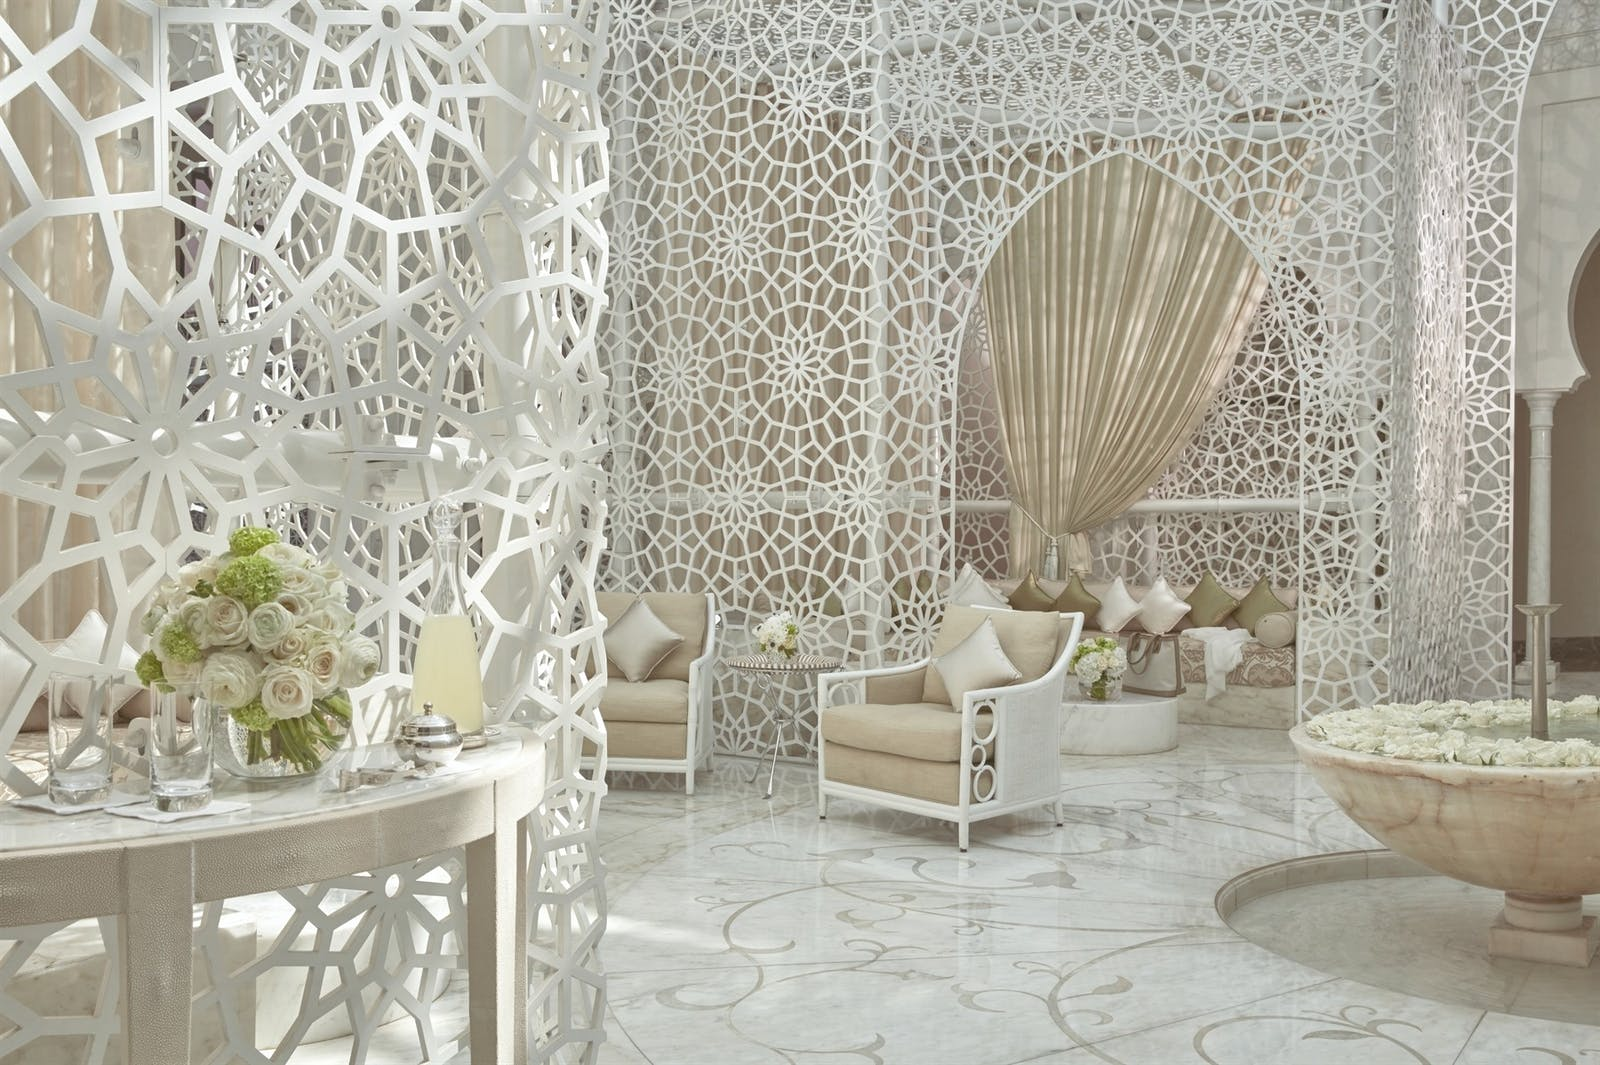 Intricately designed interiors at Royal Mansour, Marrakech